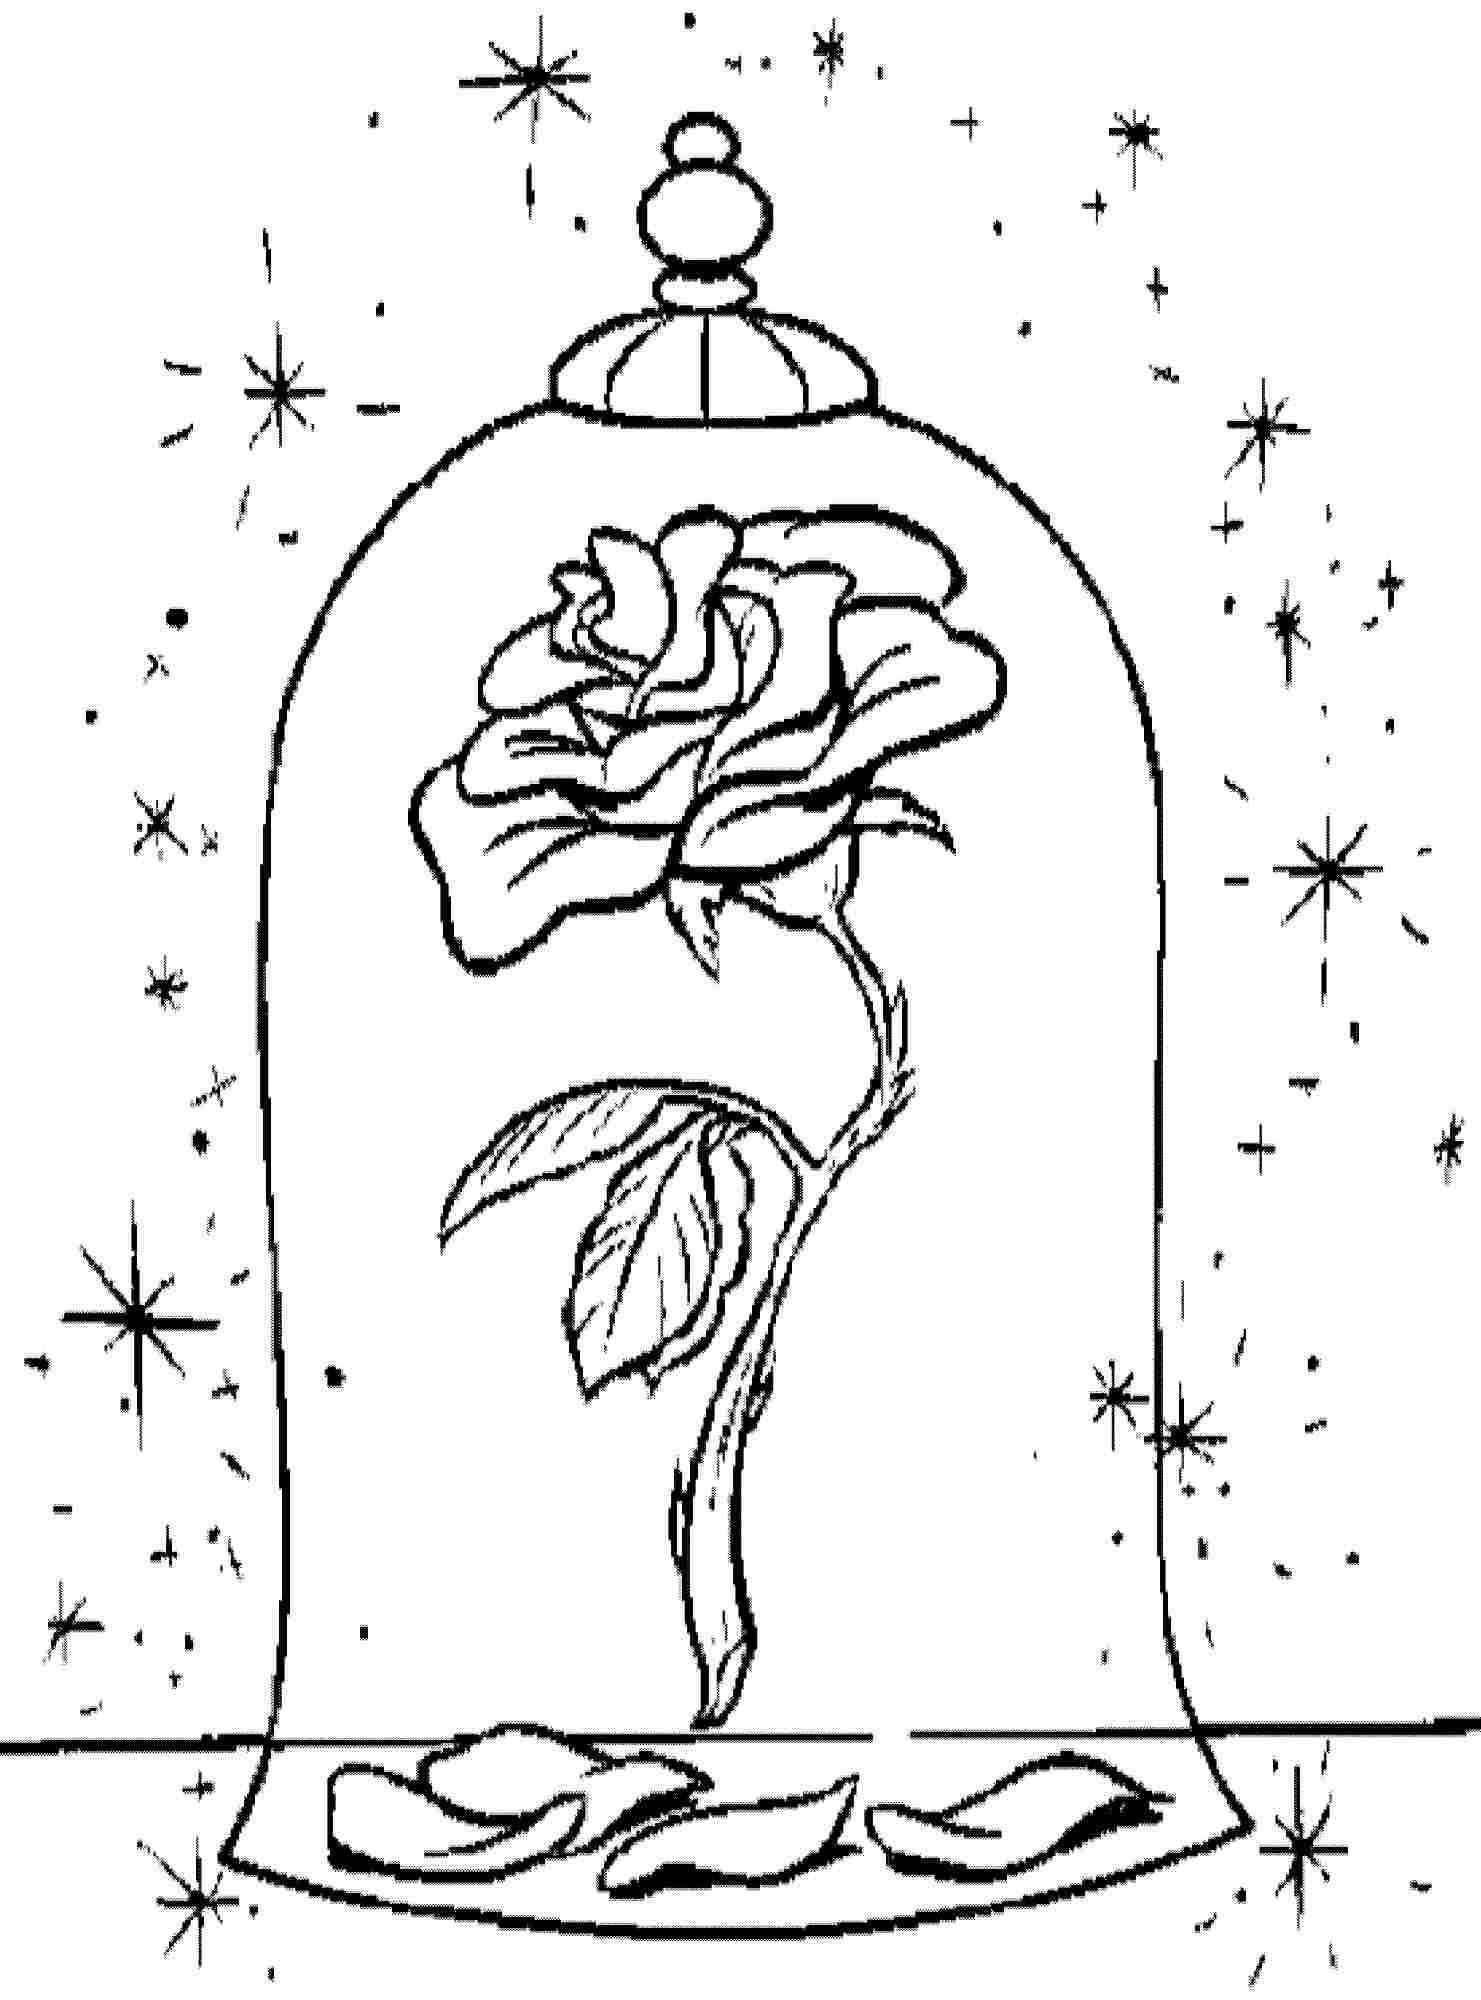 beauty and the beast printable coloring pages Beauty And The Beast Rose Coloring Pages | Coloring Pages  beauty and the beast printable coloring pages